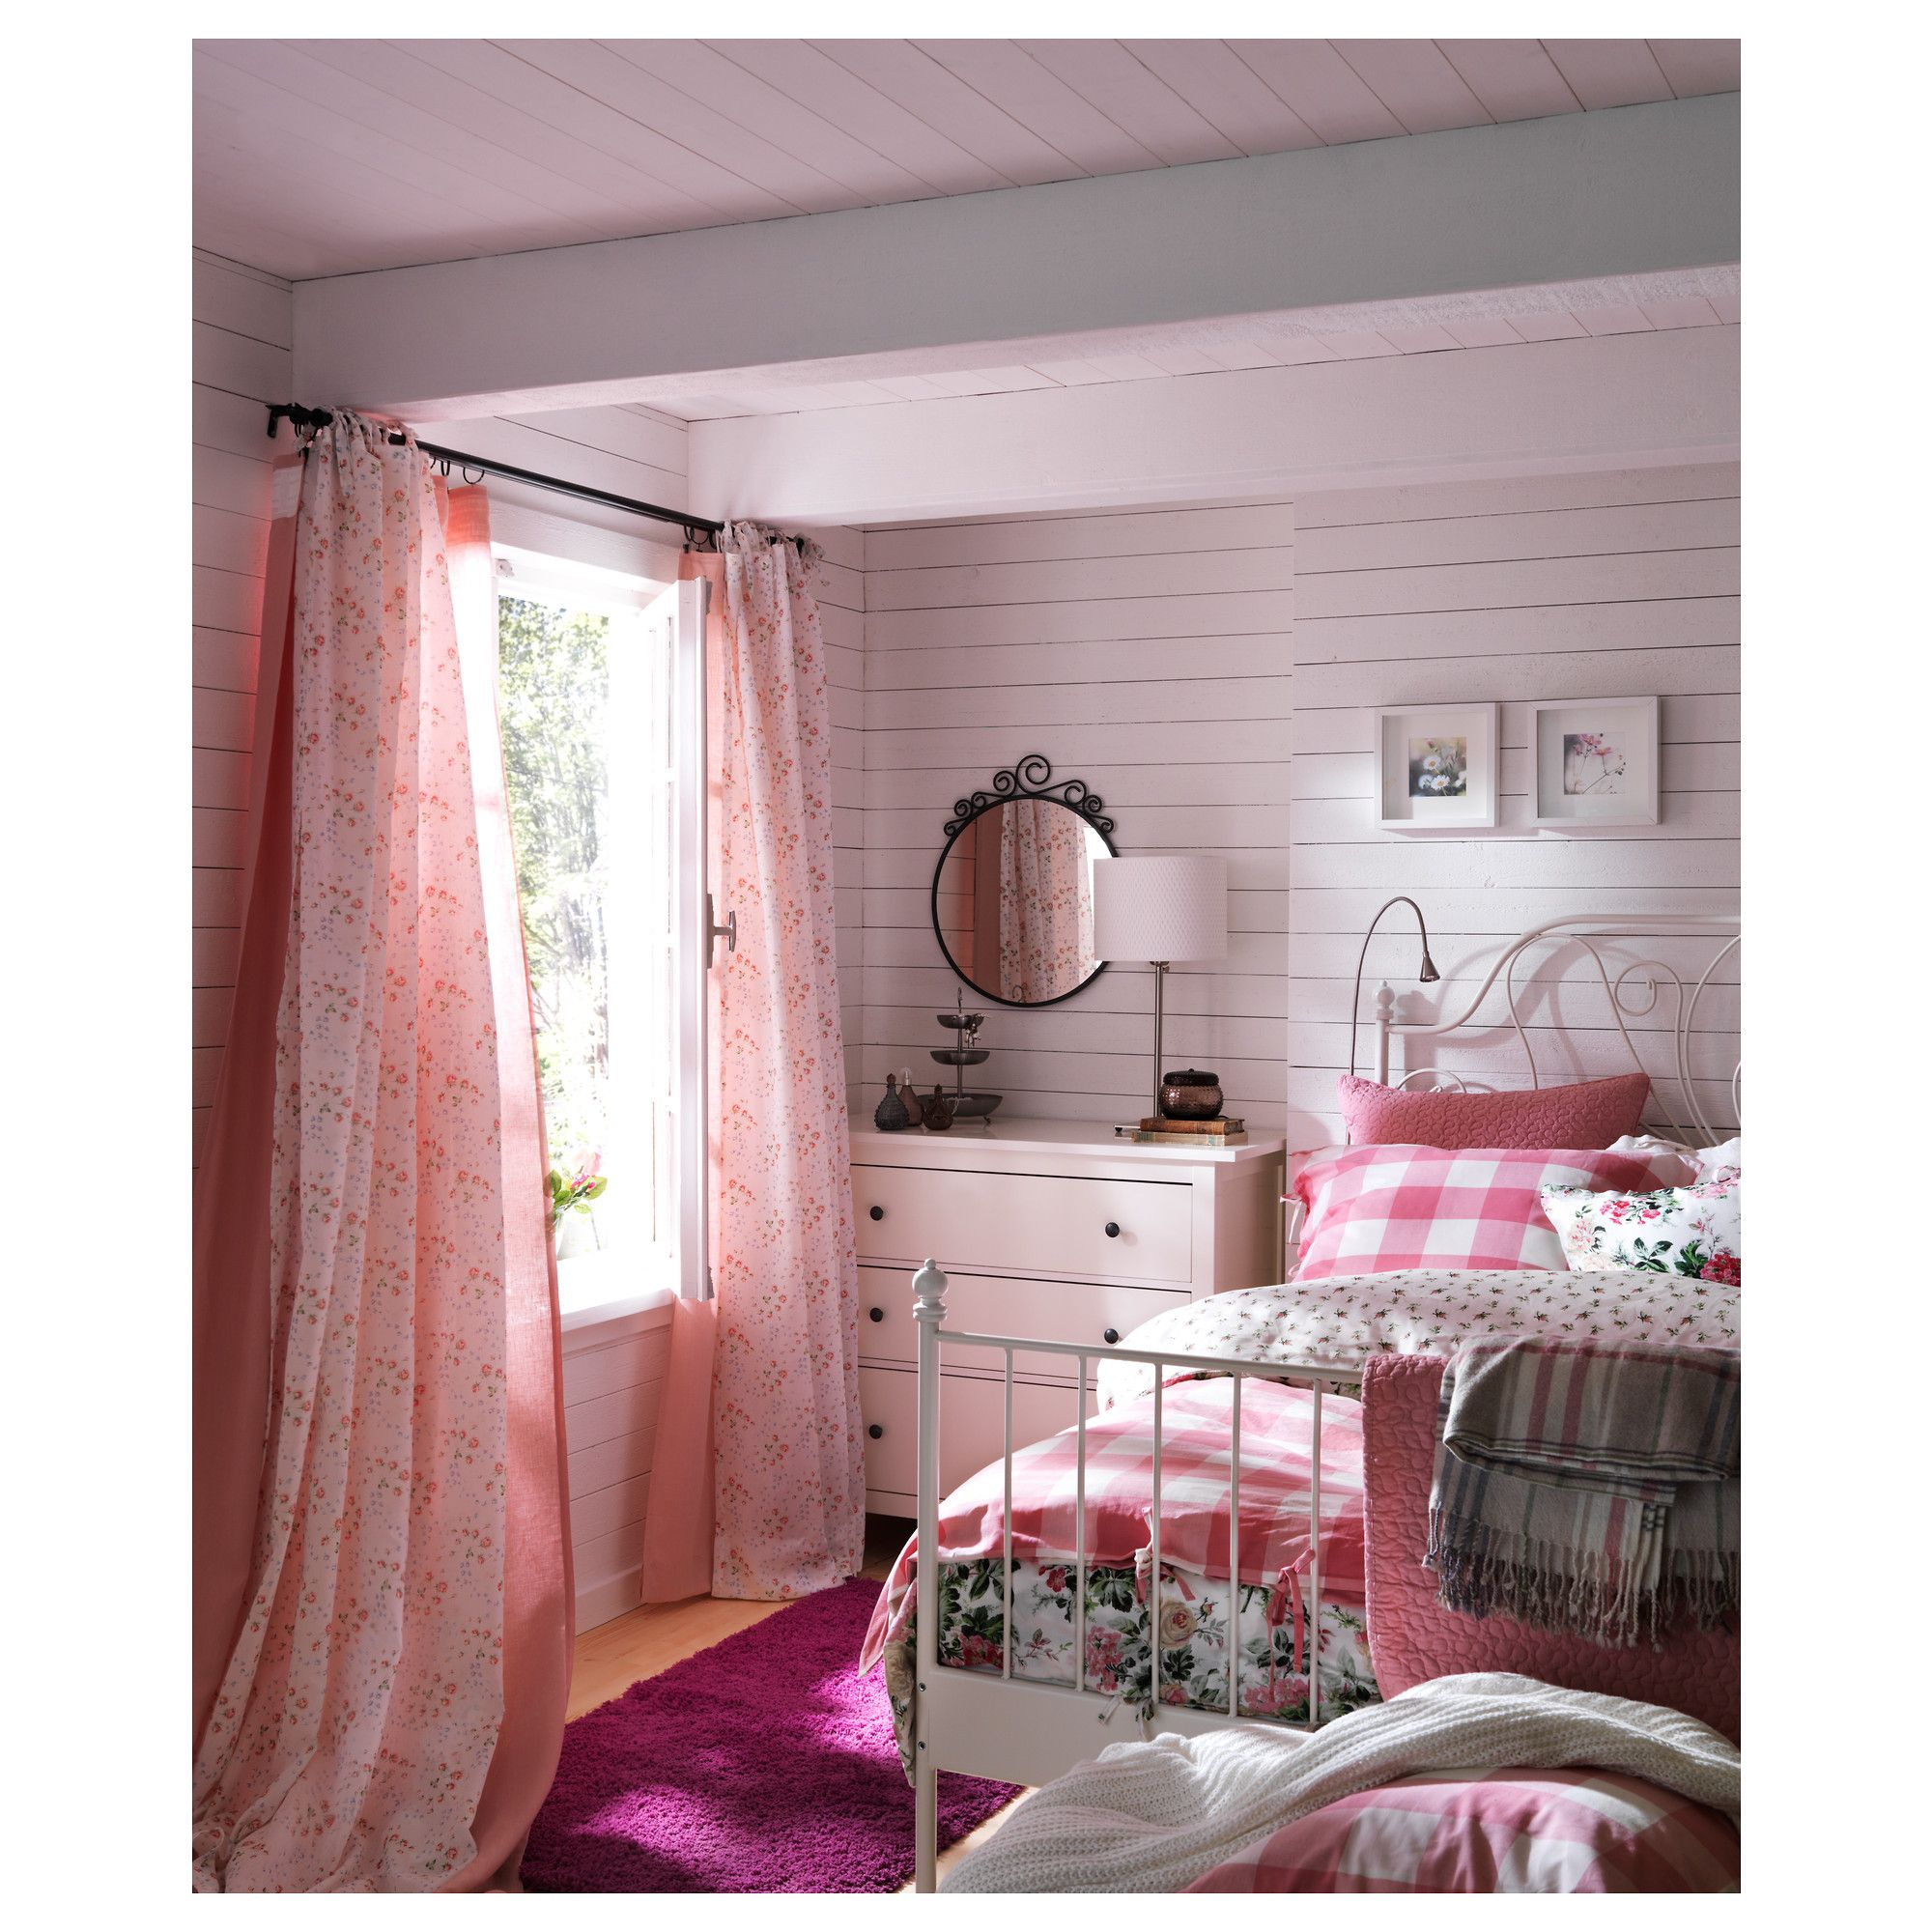 Ikea Bedroom Leirvik Hemnes Is Creative Inspiration For Us: Furniture And Home Furnishings In 2019